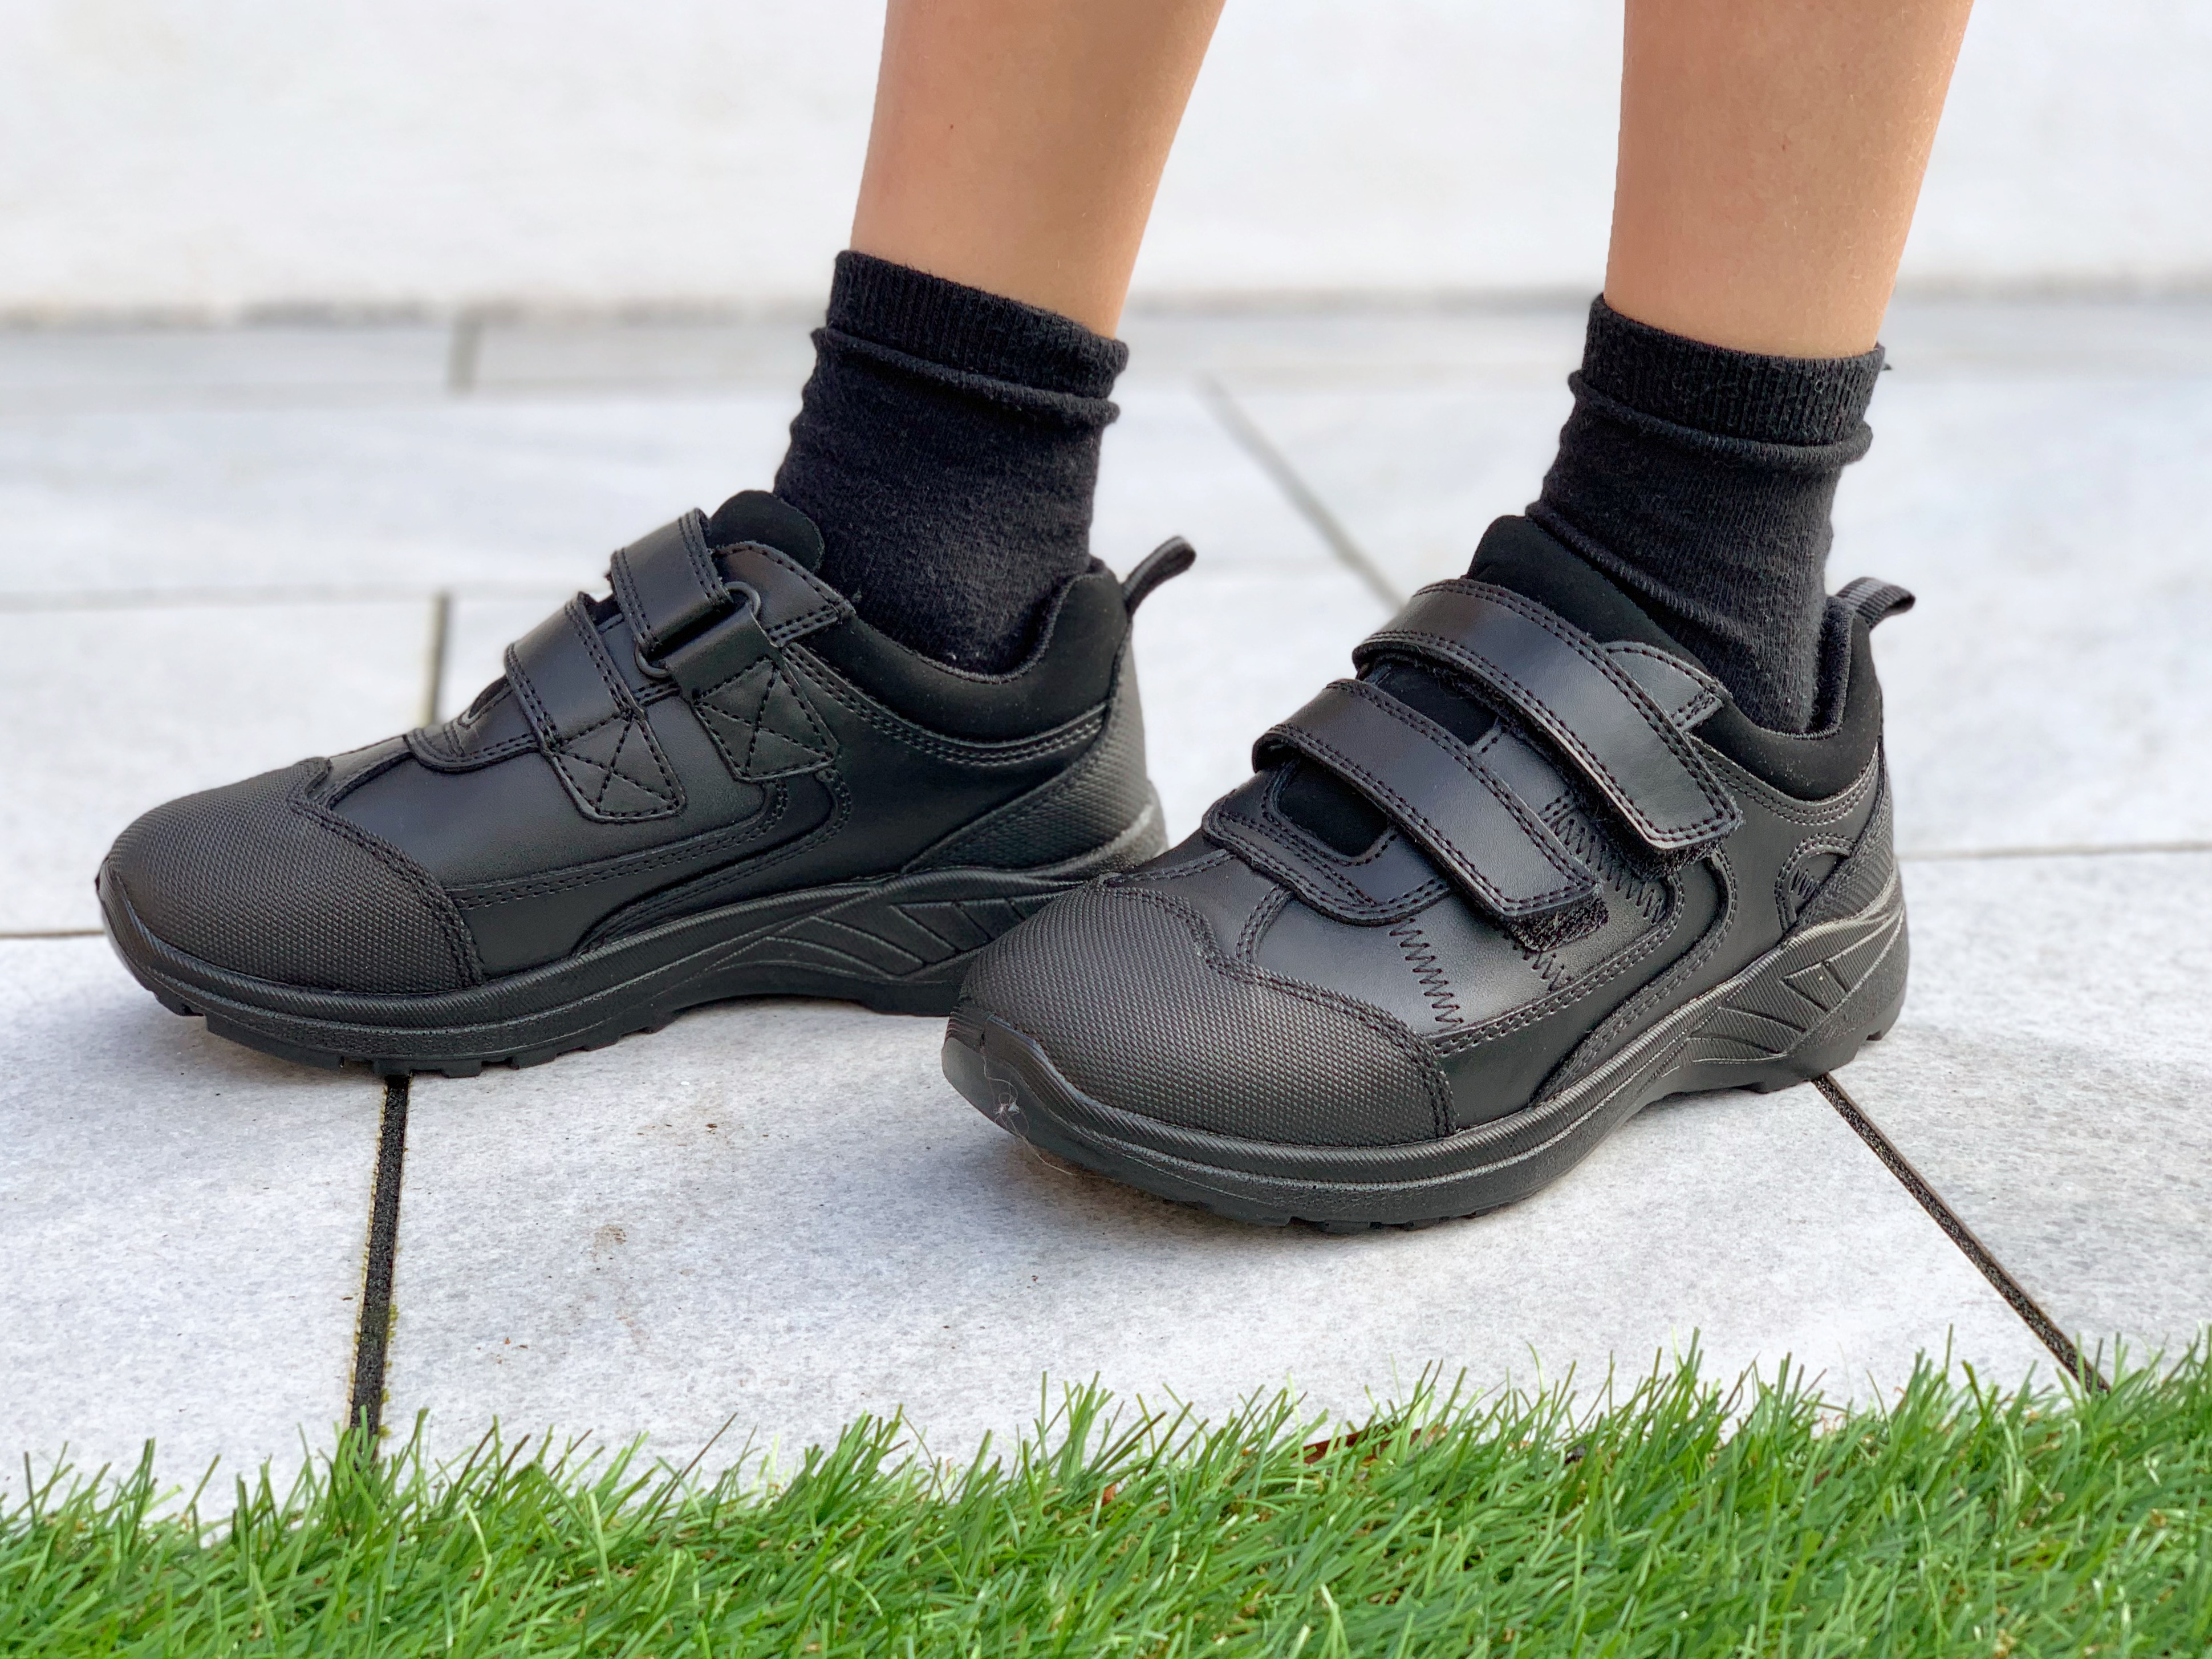 Treads school shoes for boys and girls review